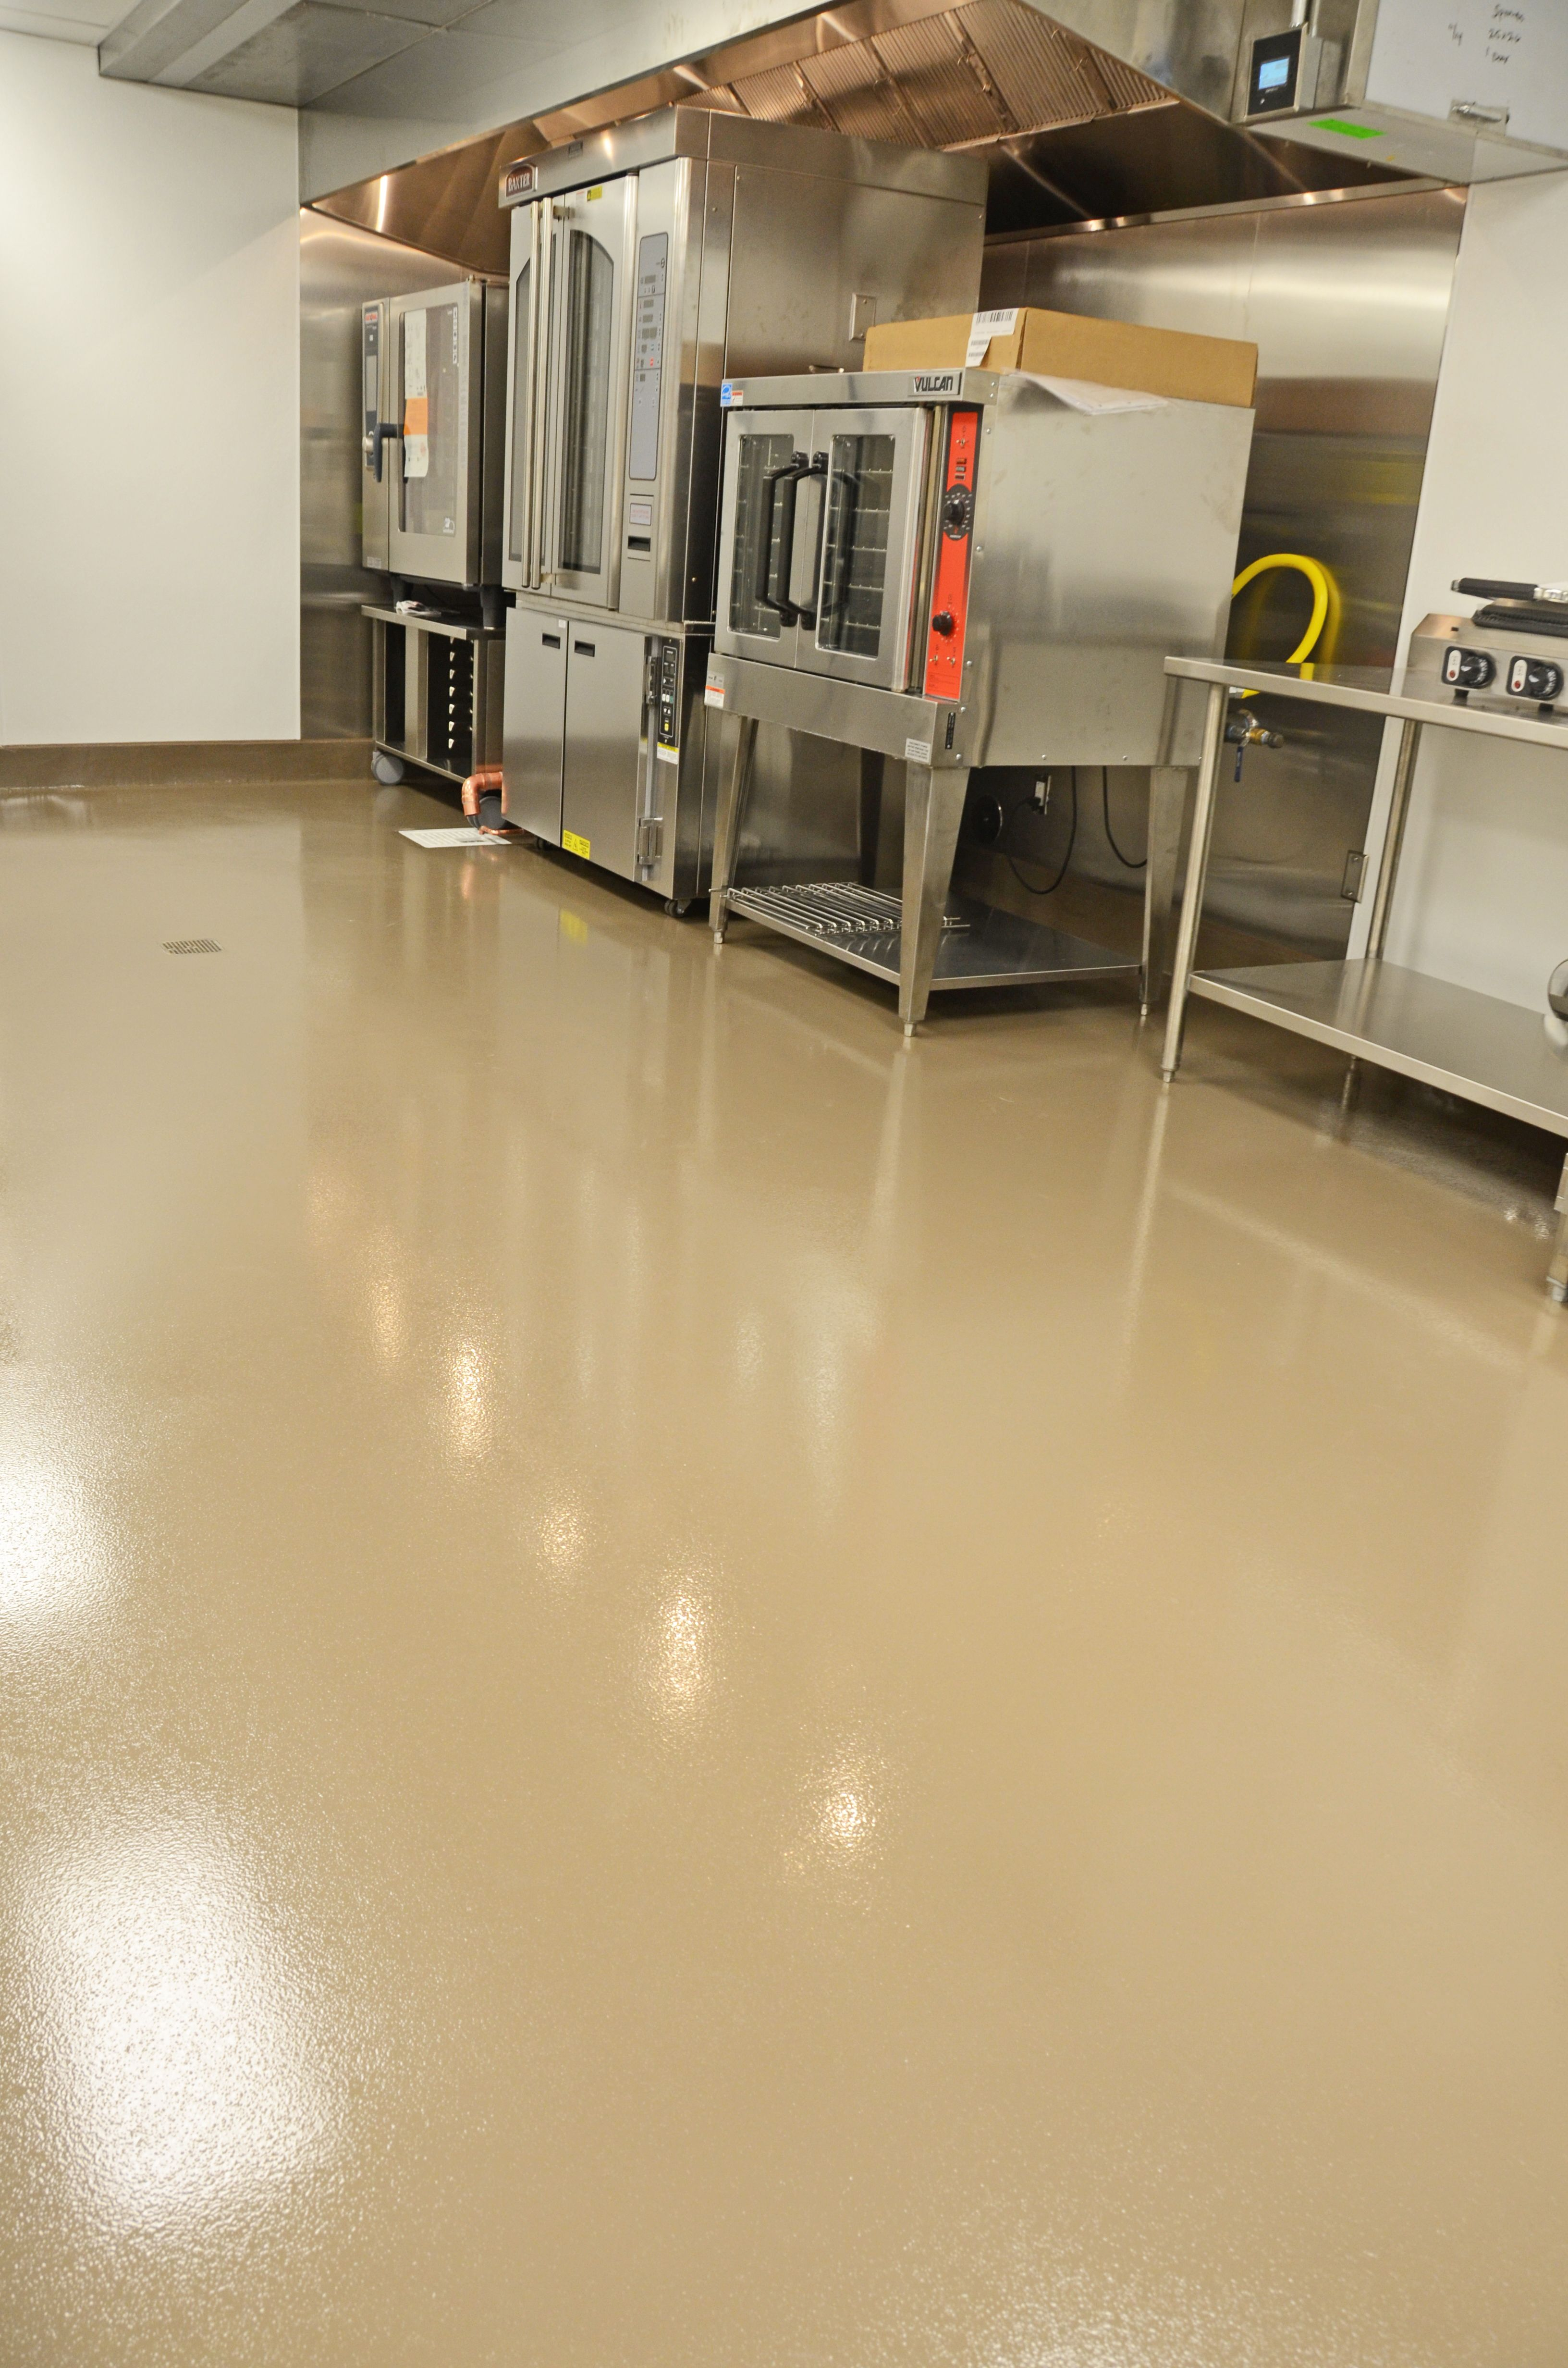 Urethane Cement Epoxy on Commercial Restaurant Easy To Clean Kitchen on bathroom finishes, kitchen floor layout, ceiling finishes, kitchen floor trims, basement finishes, kitchen floor systems, kitchen floor coverings, kitchen floor textures, kitchen floor materials, kitchen floor products, kitchen floor art, shower finishes, kitchen floor paint, kitchen floor colors, kitchen floor marble, kitchen floor surfaces, concrete finishes, kitchen floor granite, kitchen floor carpet, kitchen floor construction,